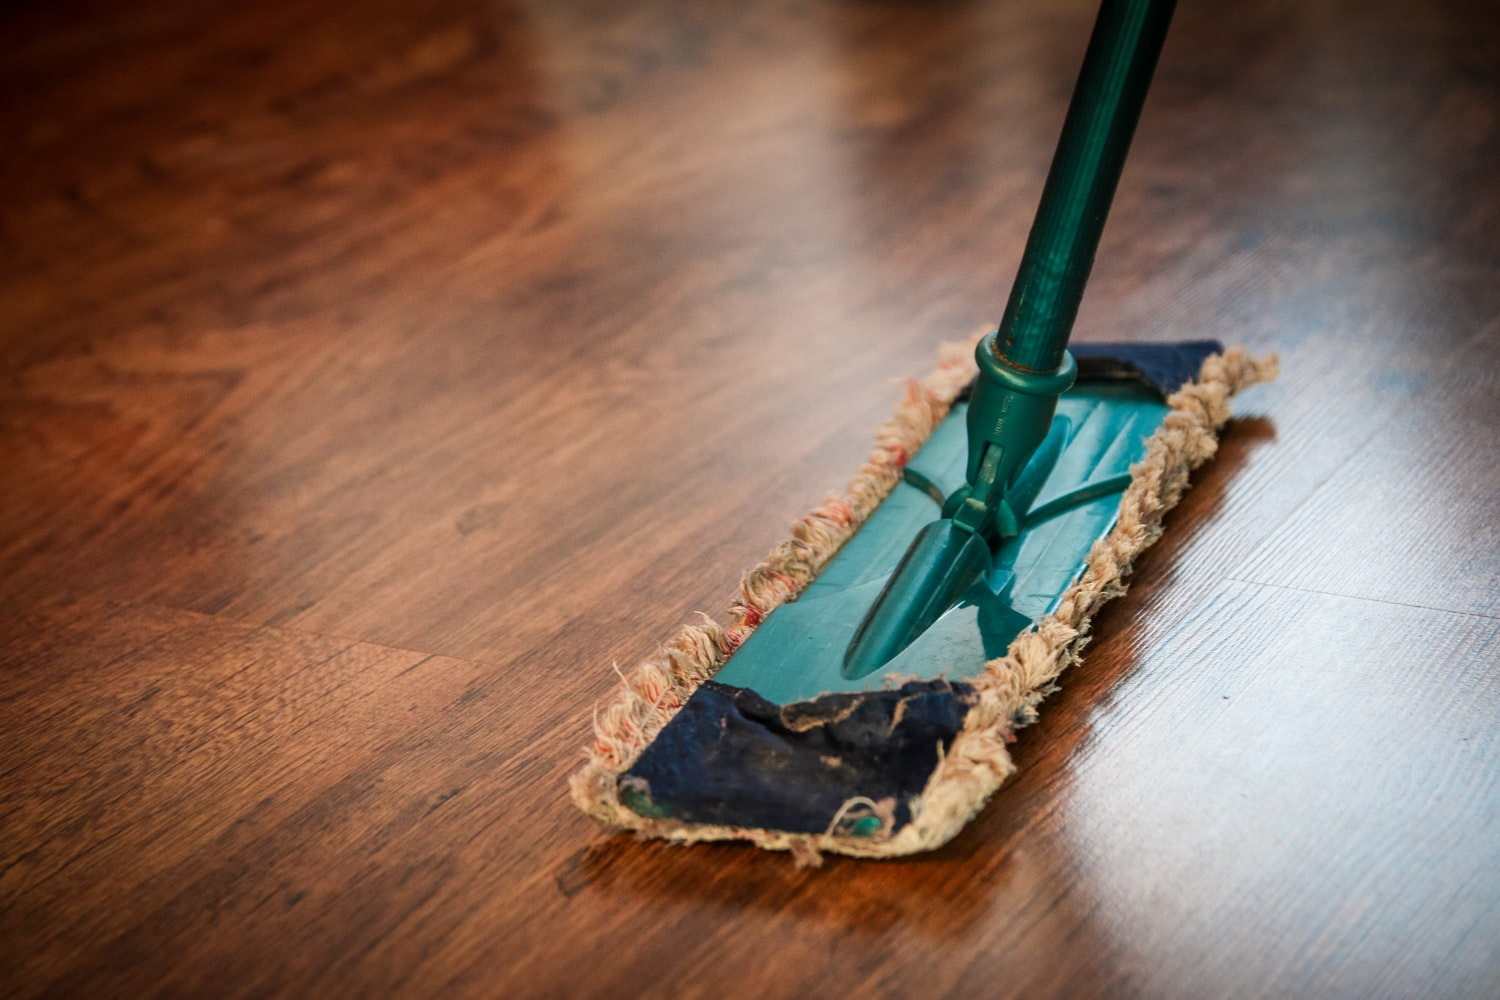 free stock photos of cleaning 183 pexels